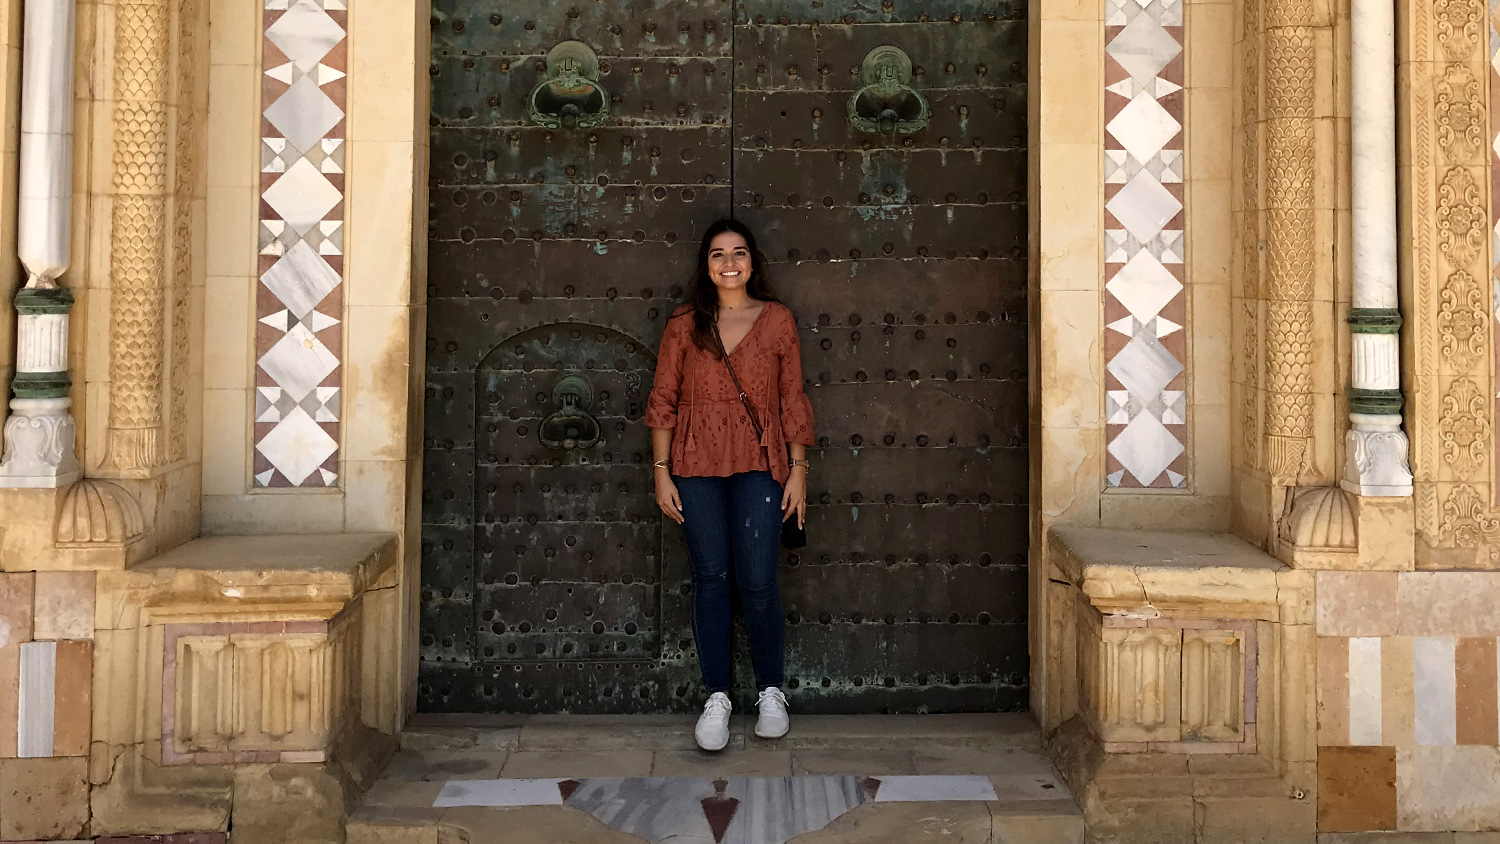 A student poses in front of a doorway during a study abroad trip